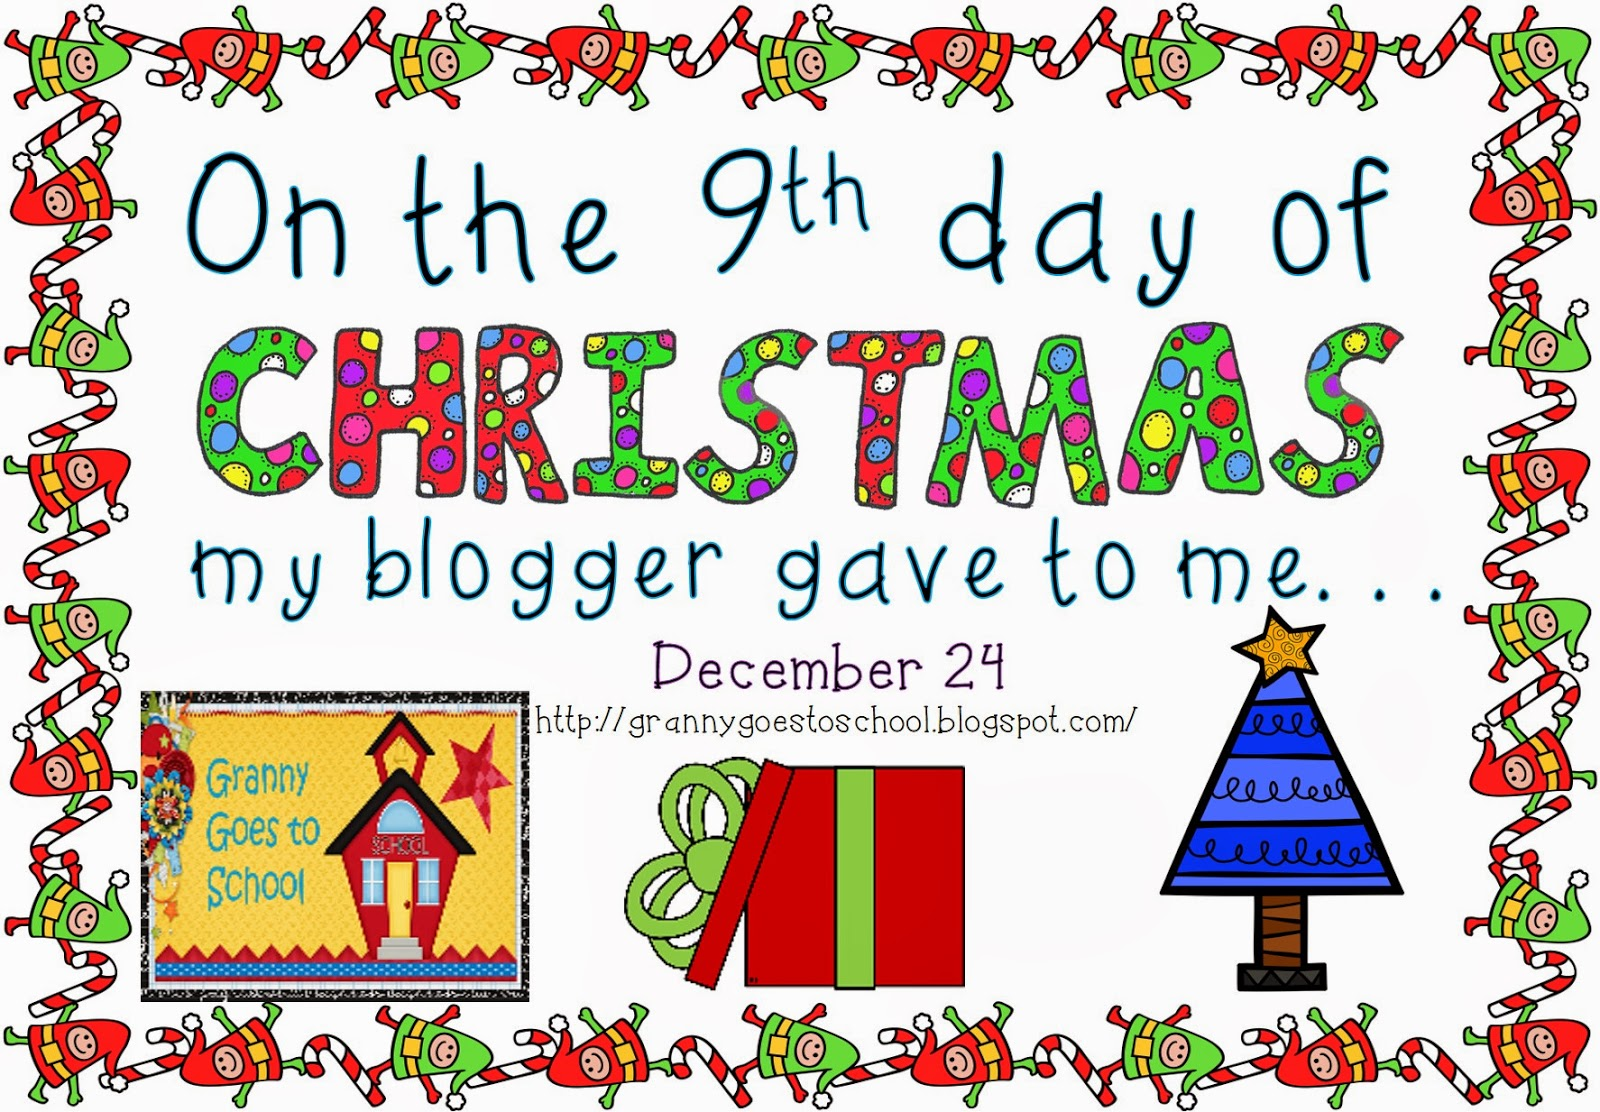 Granny Goes to School: 9 Days of Christmas: Day 9